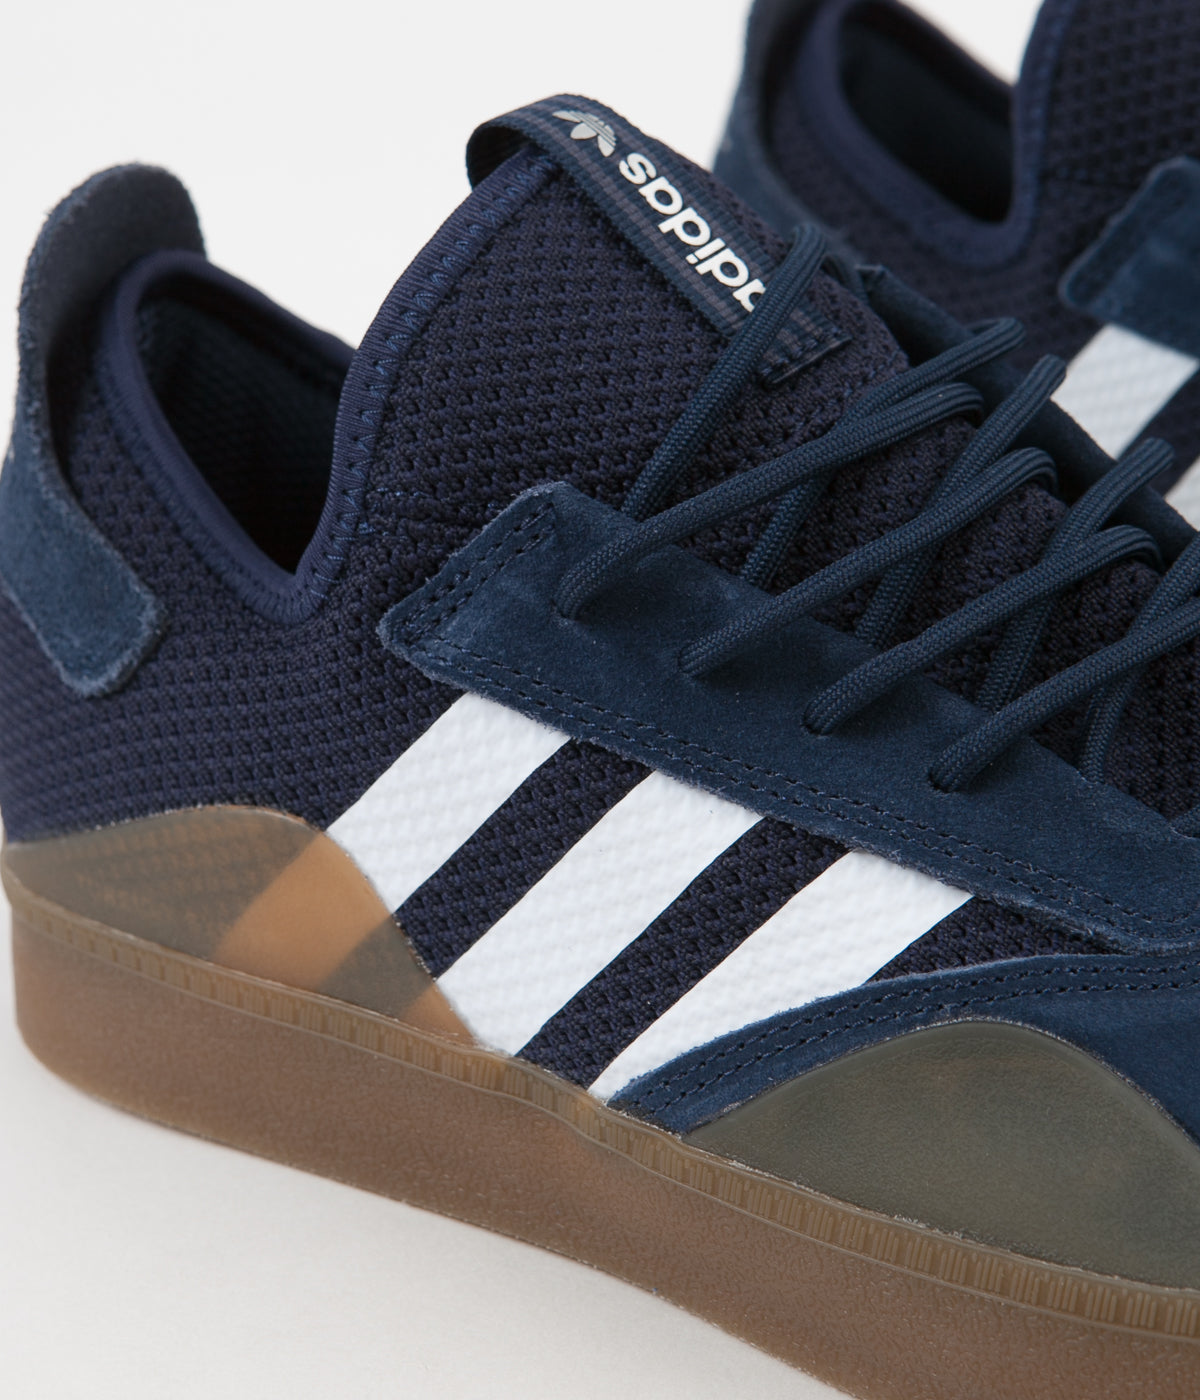 b03f1c4aaa49 ... Adidas 3ST.001 Shoes - Collegiate Navy   FTW White   Gum4 ...